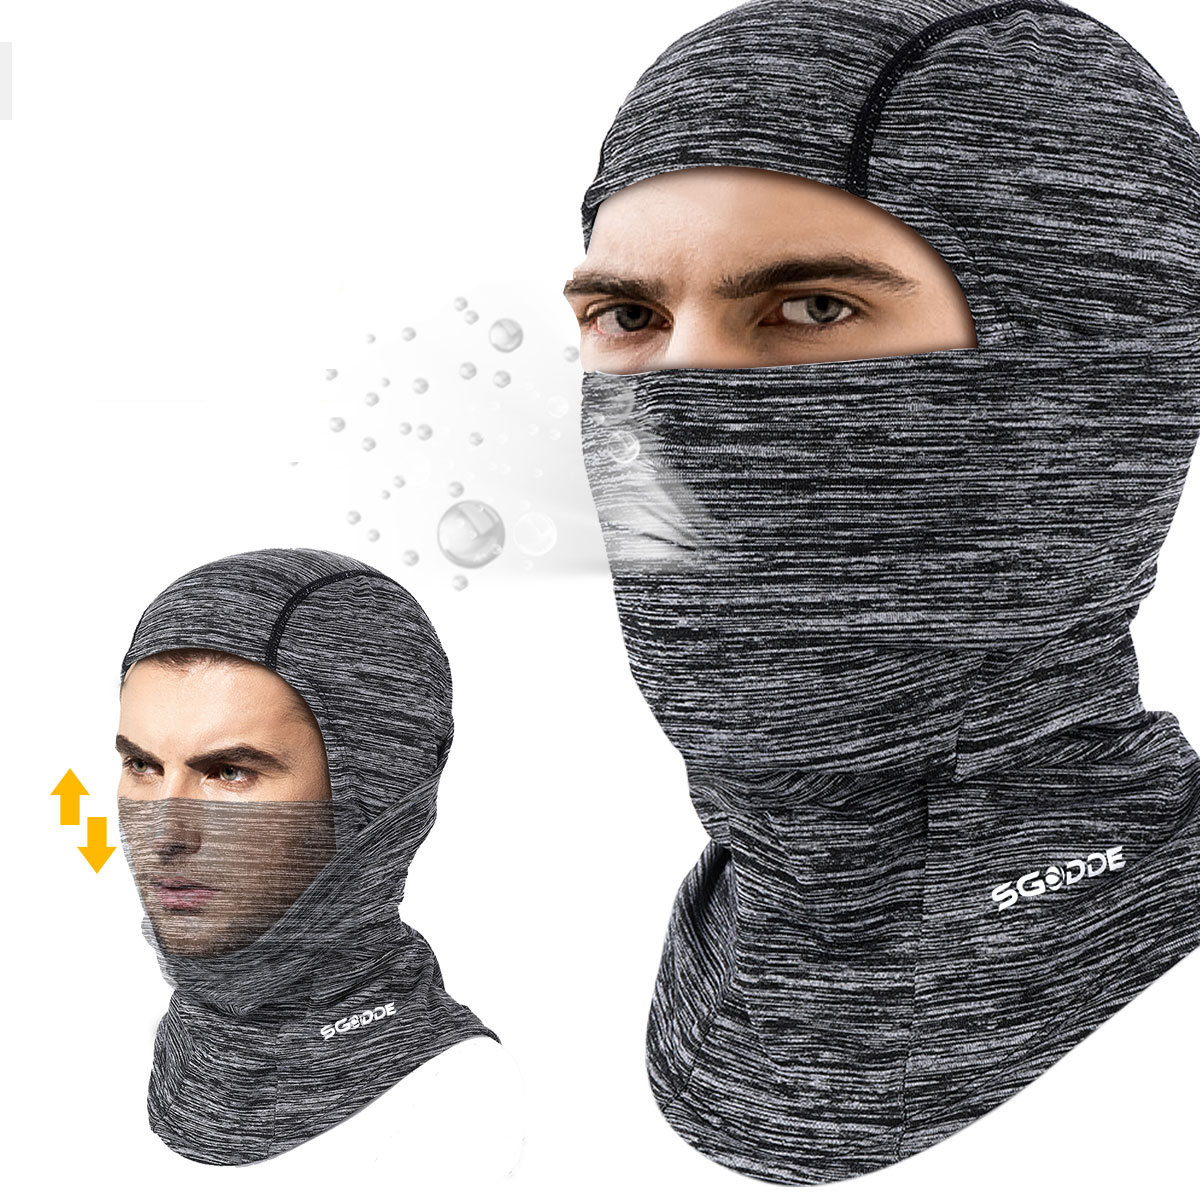 SGODDE Balaclava Face Neck Gaiter Breathable Windproof Head-Wear Skiing Mask Outdoor Sports Electric Bike Scooter Motorcycle